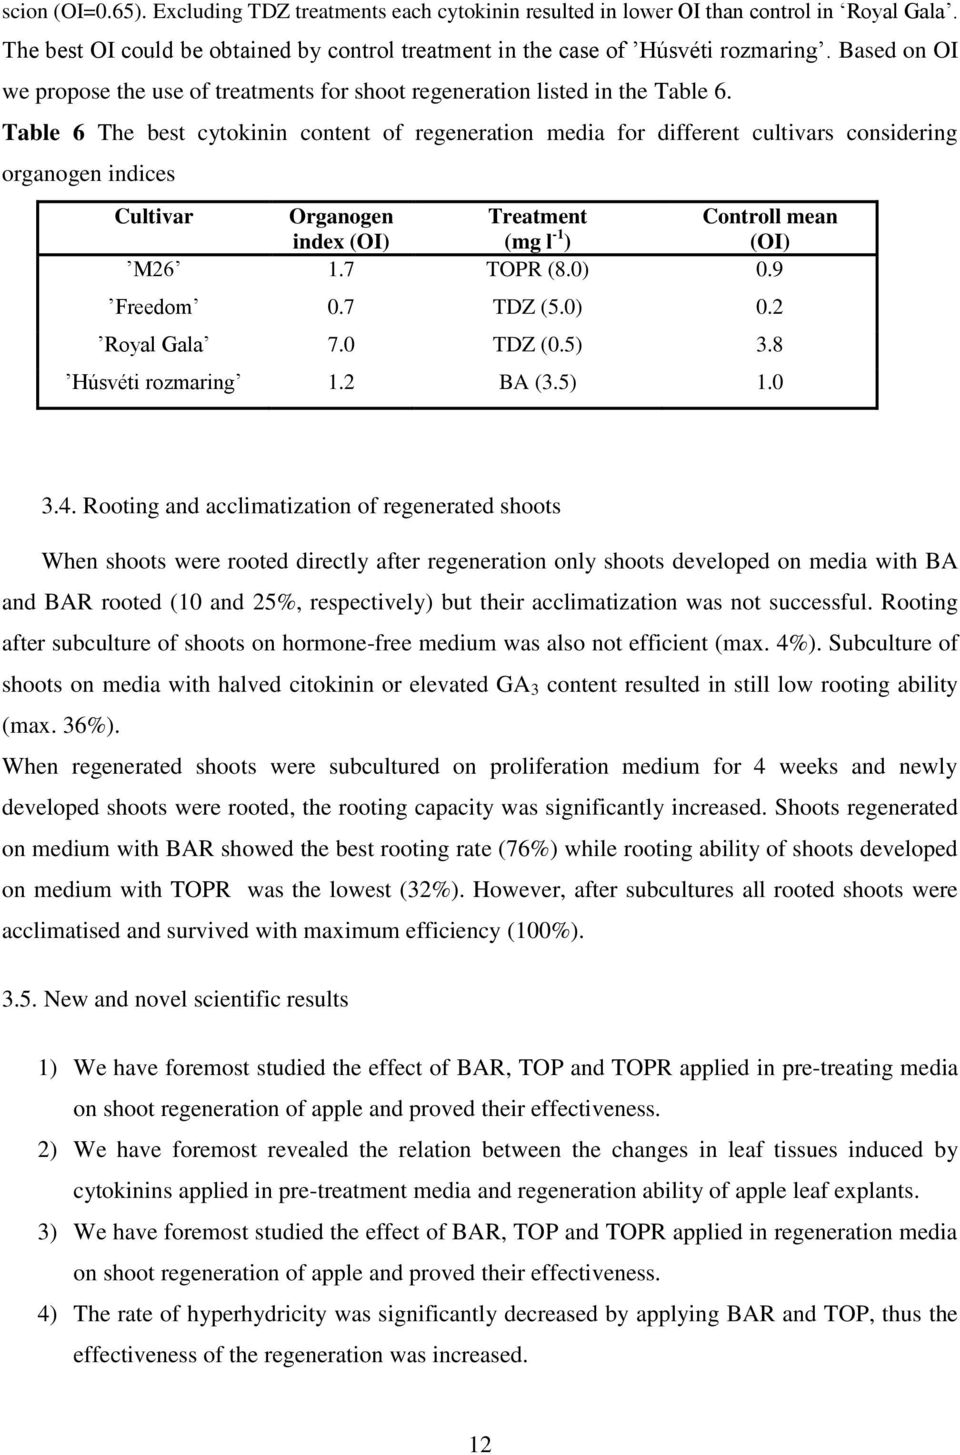 Table 6 The best cytokinin content of regeneration media for different cultivars considering organogen indices Cultivar Organogen Treatment Controll mean index (OI) (mg l -1 ) (OI) M26 1.7 TOPR (8.